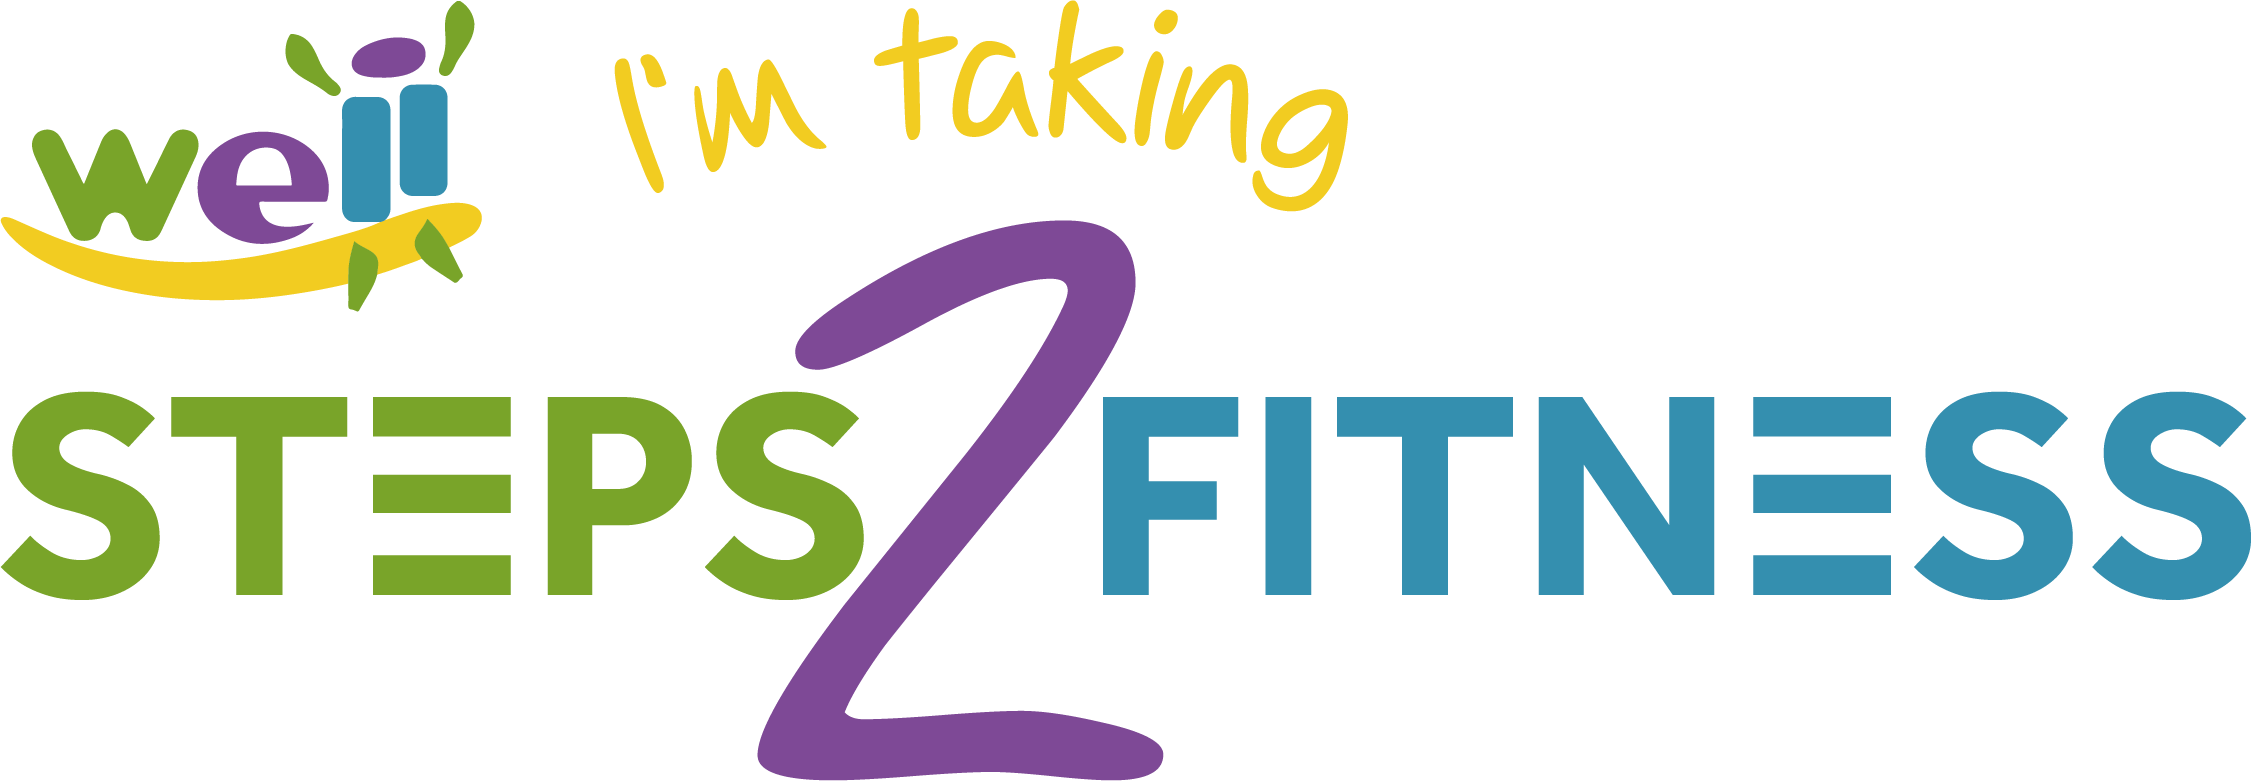 Steps 2 Fitness Clothing Brand